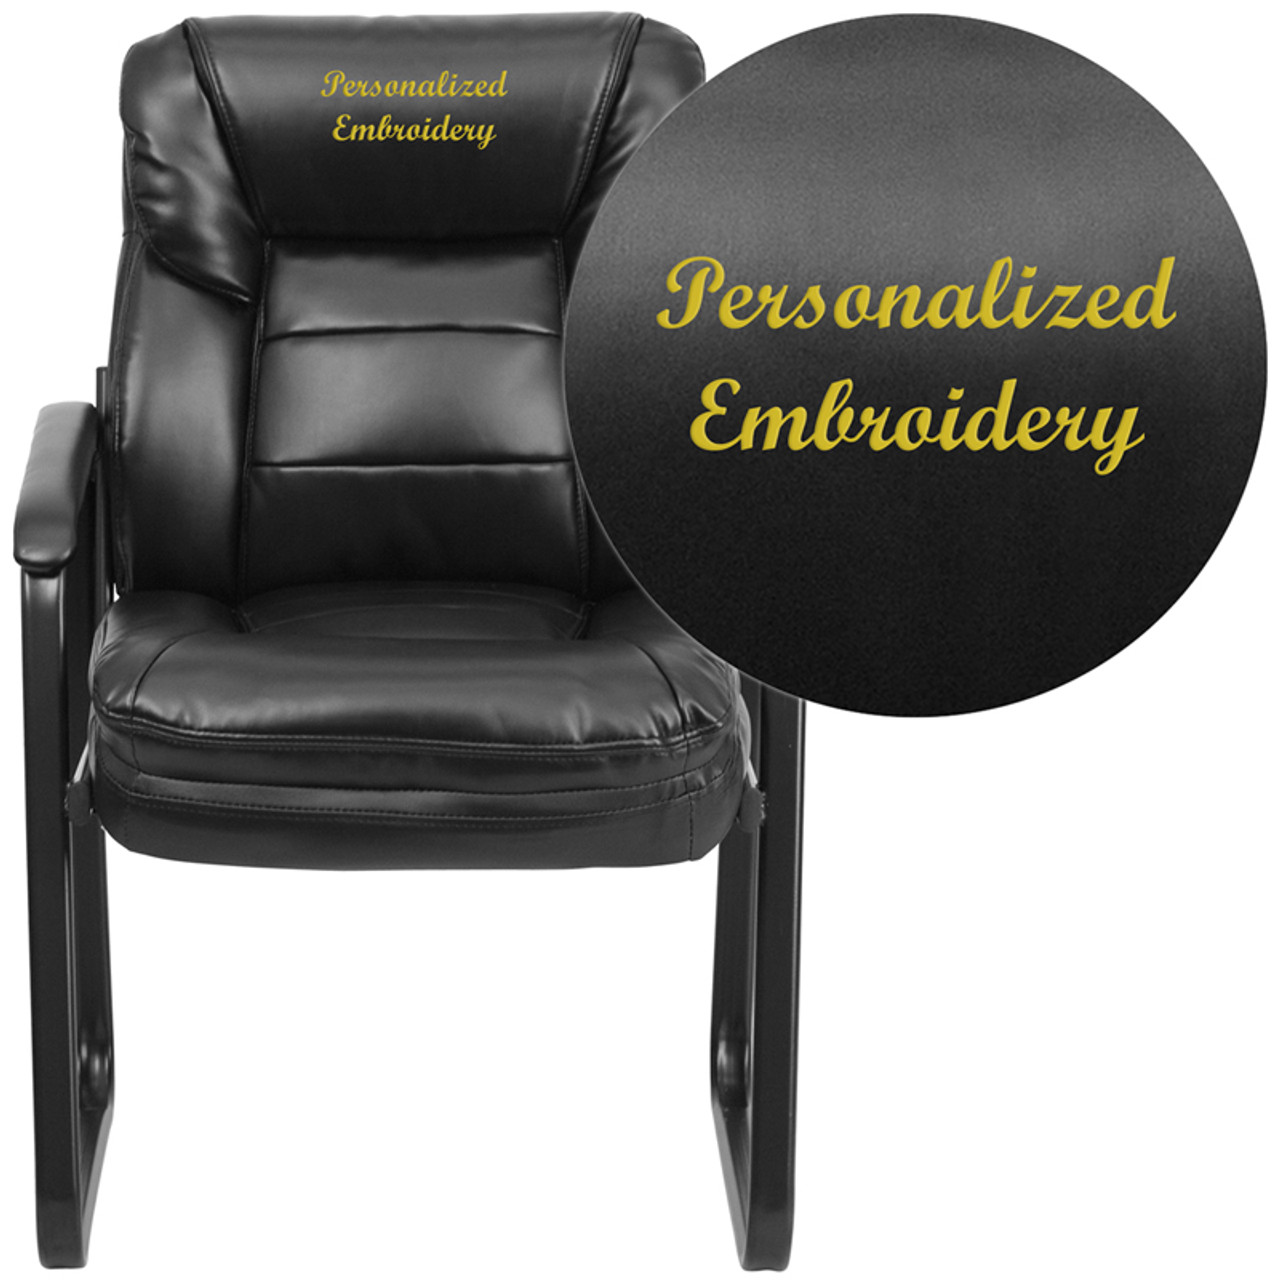 Surprising Embroidered Black Leather Executive Side Reception Chair With Lumbar Support And Sled Base Pdpeps Interior Chair Design Pdpepsorg